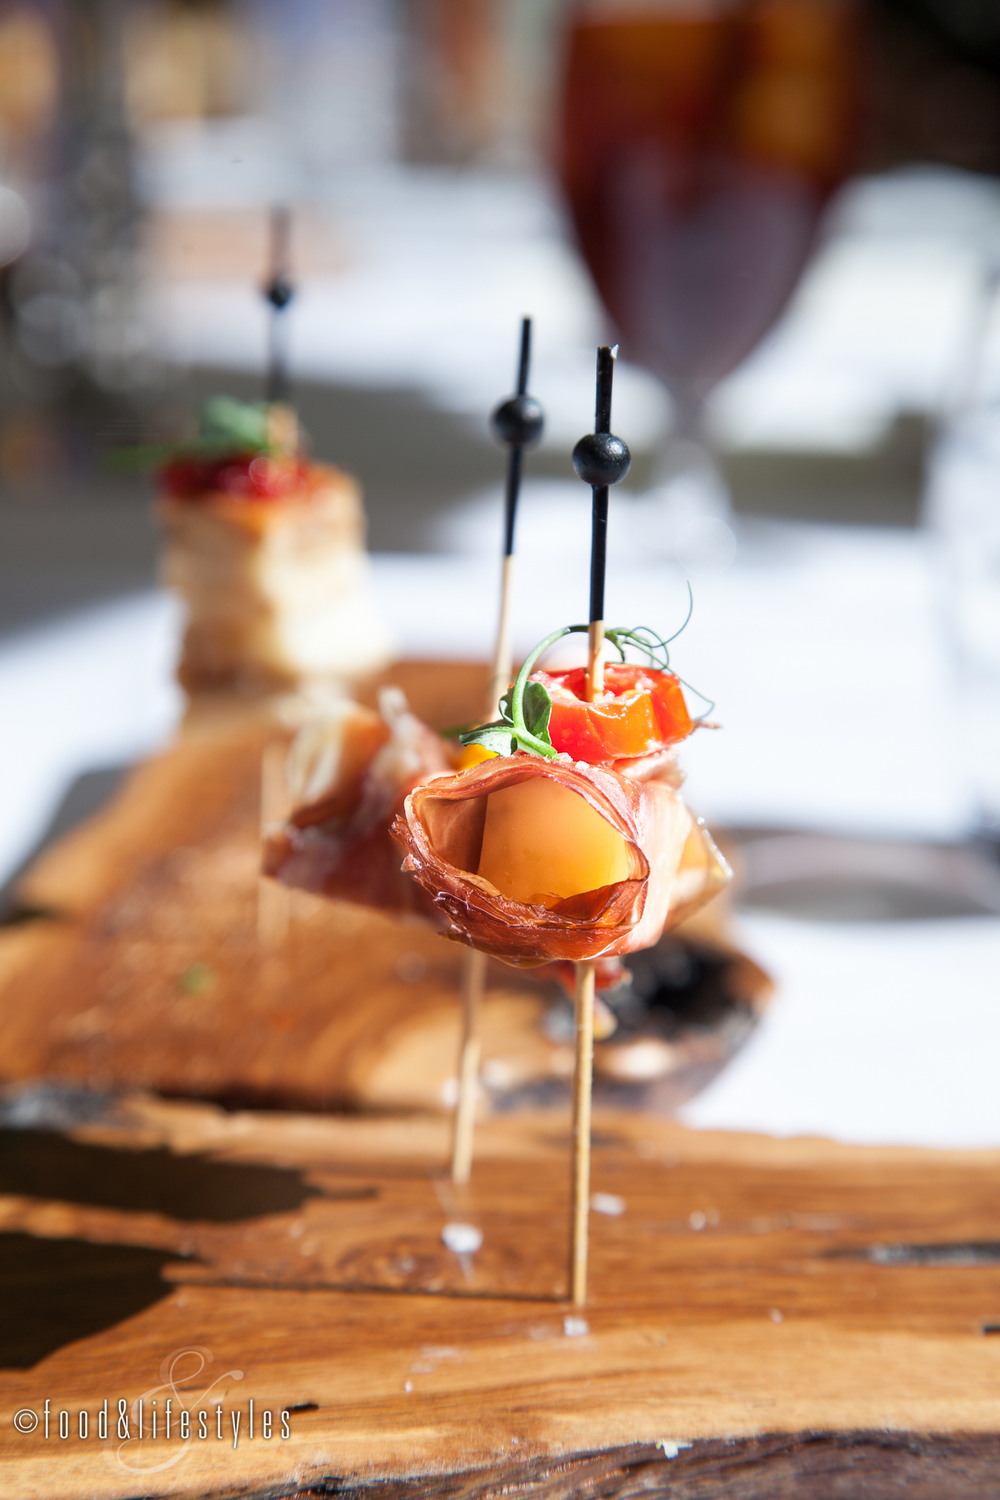 Jamón Serrano with mozzarella and marinated tomatoes